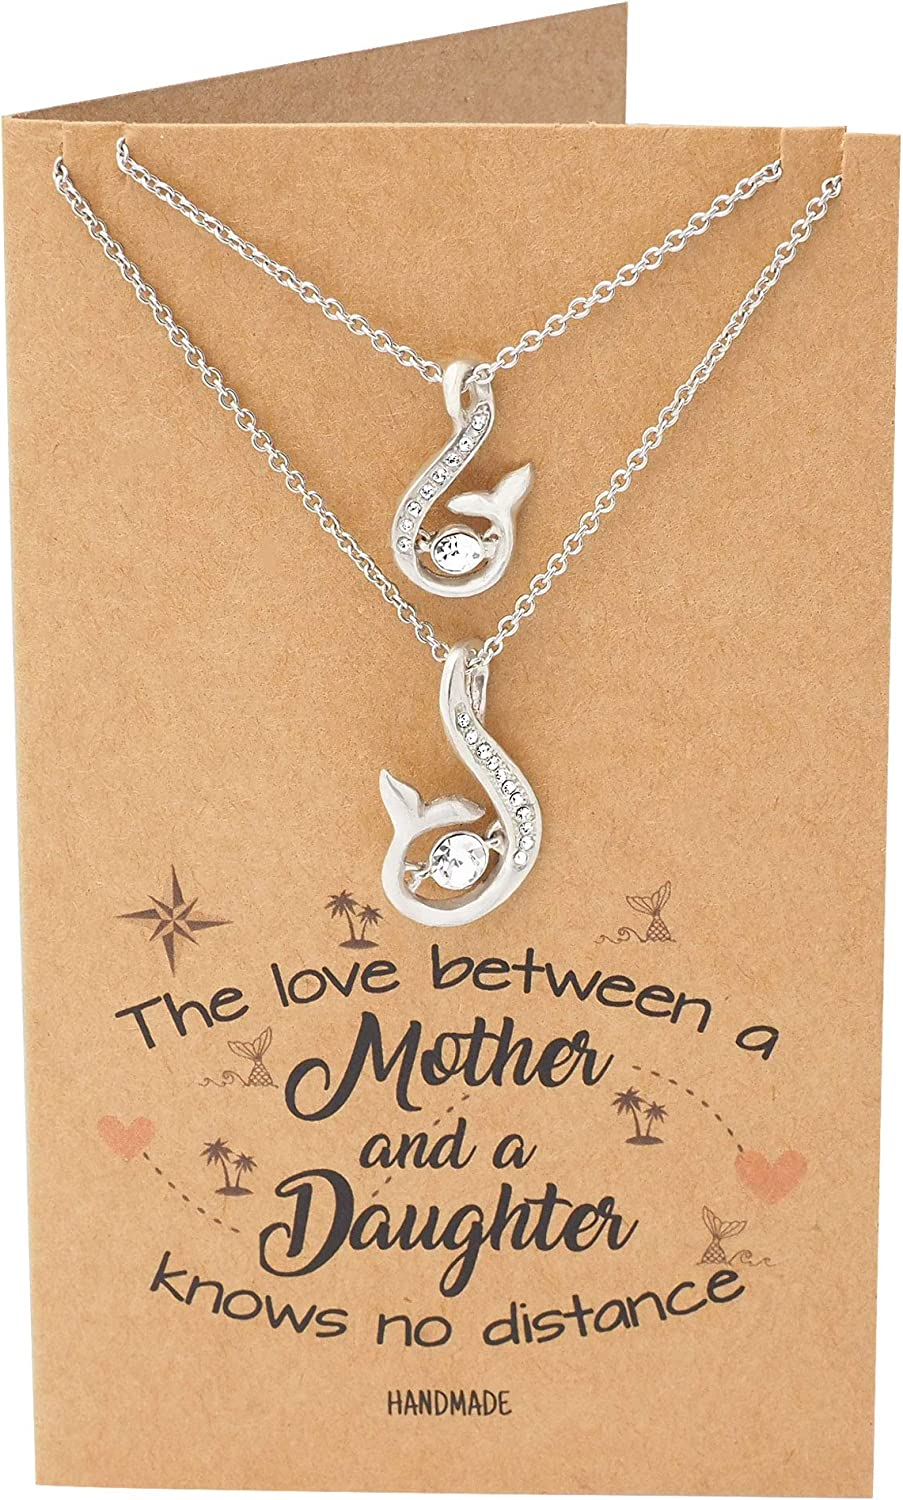 Quan Jewelry Handmade Mother Daughter Necklace, Mermaid Tail Pendant with Swarovski Crystals, Beach Themed Collar Charm, Set of 2 Necklaces, Inspirational Quote with Greeting Card